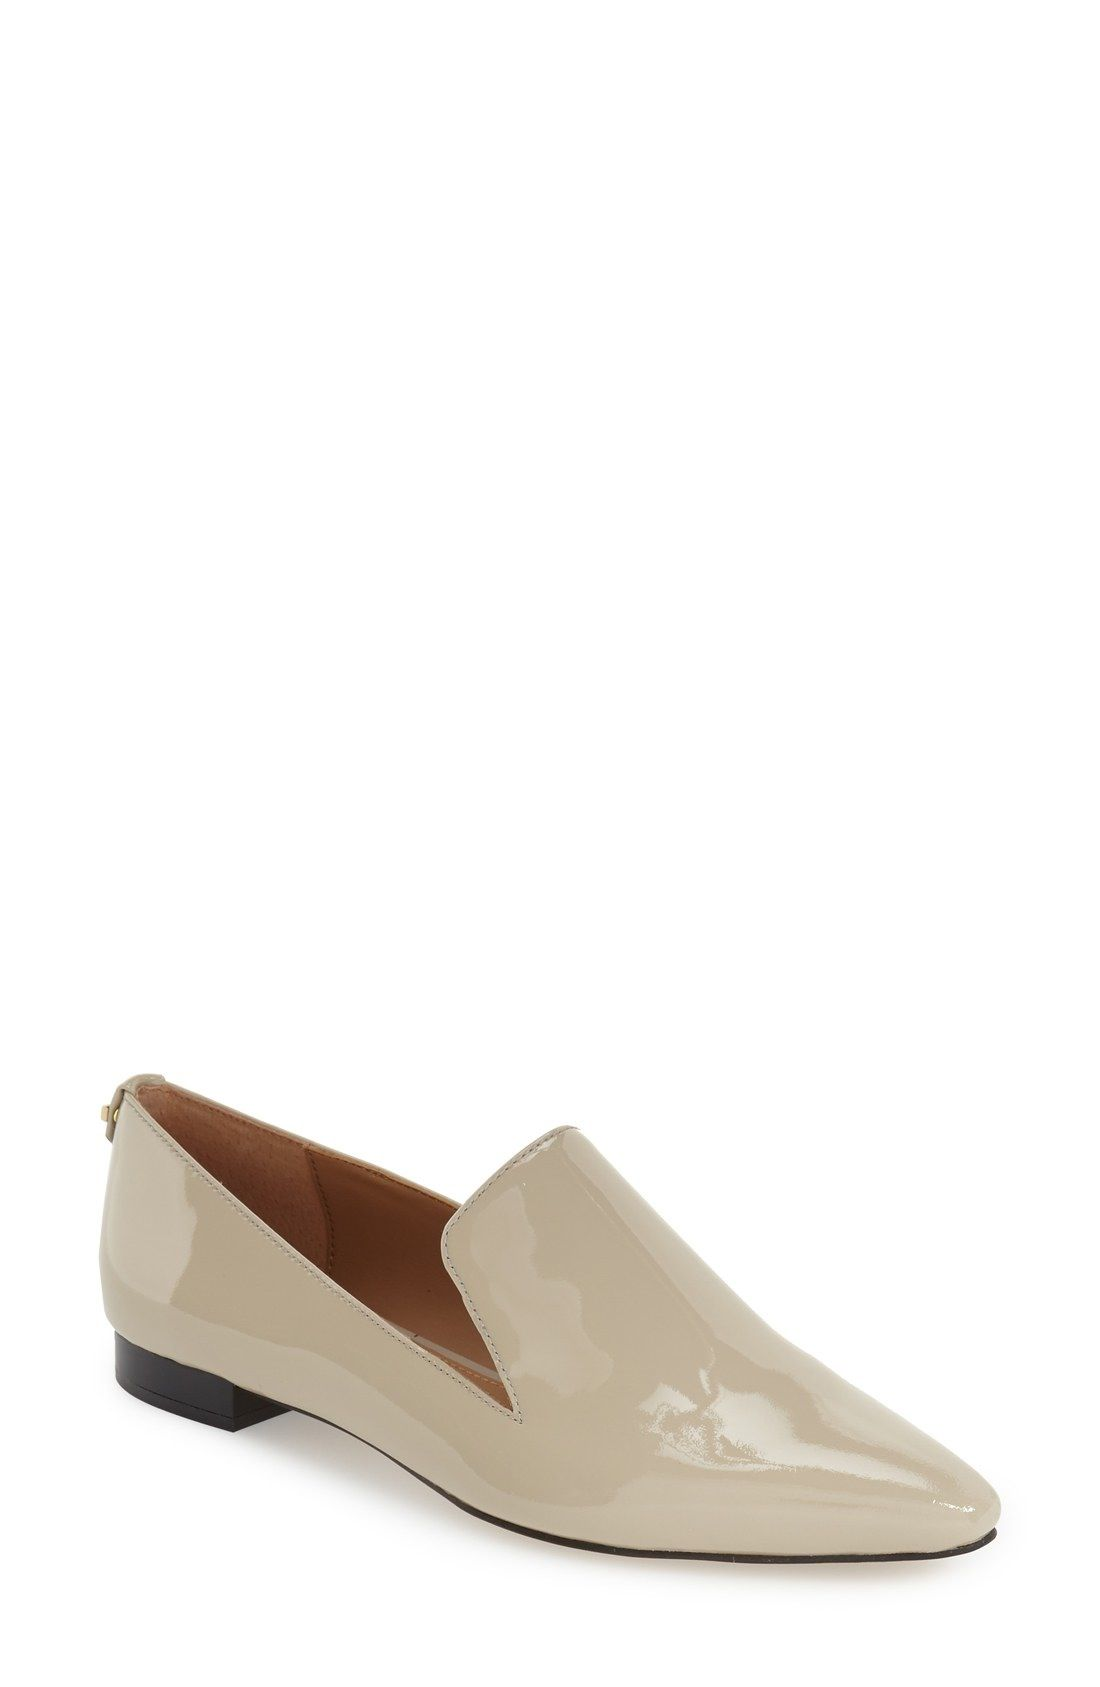 2402c8c46c6 Calvin Klein  Elin  Pointy Toe Loafer (Women) available at  Nordstrom